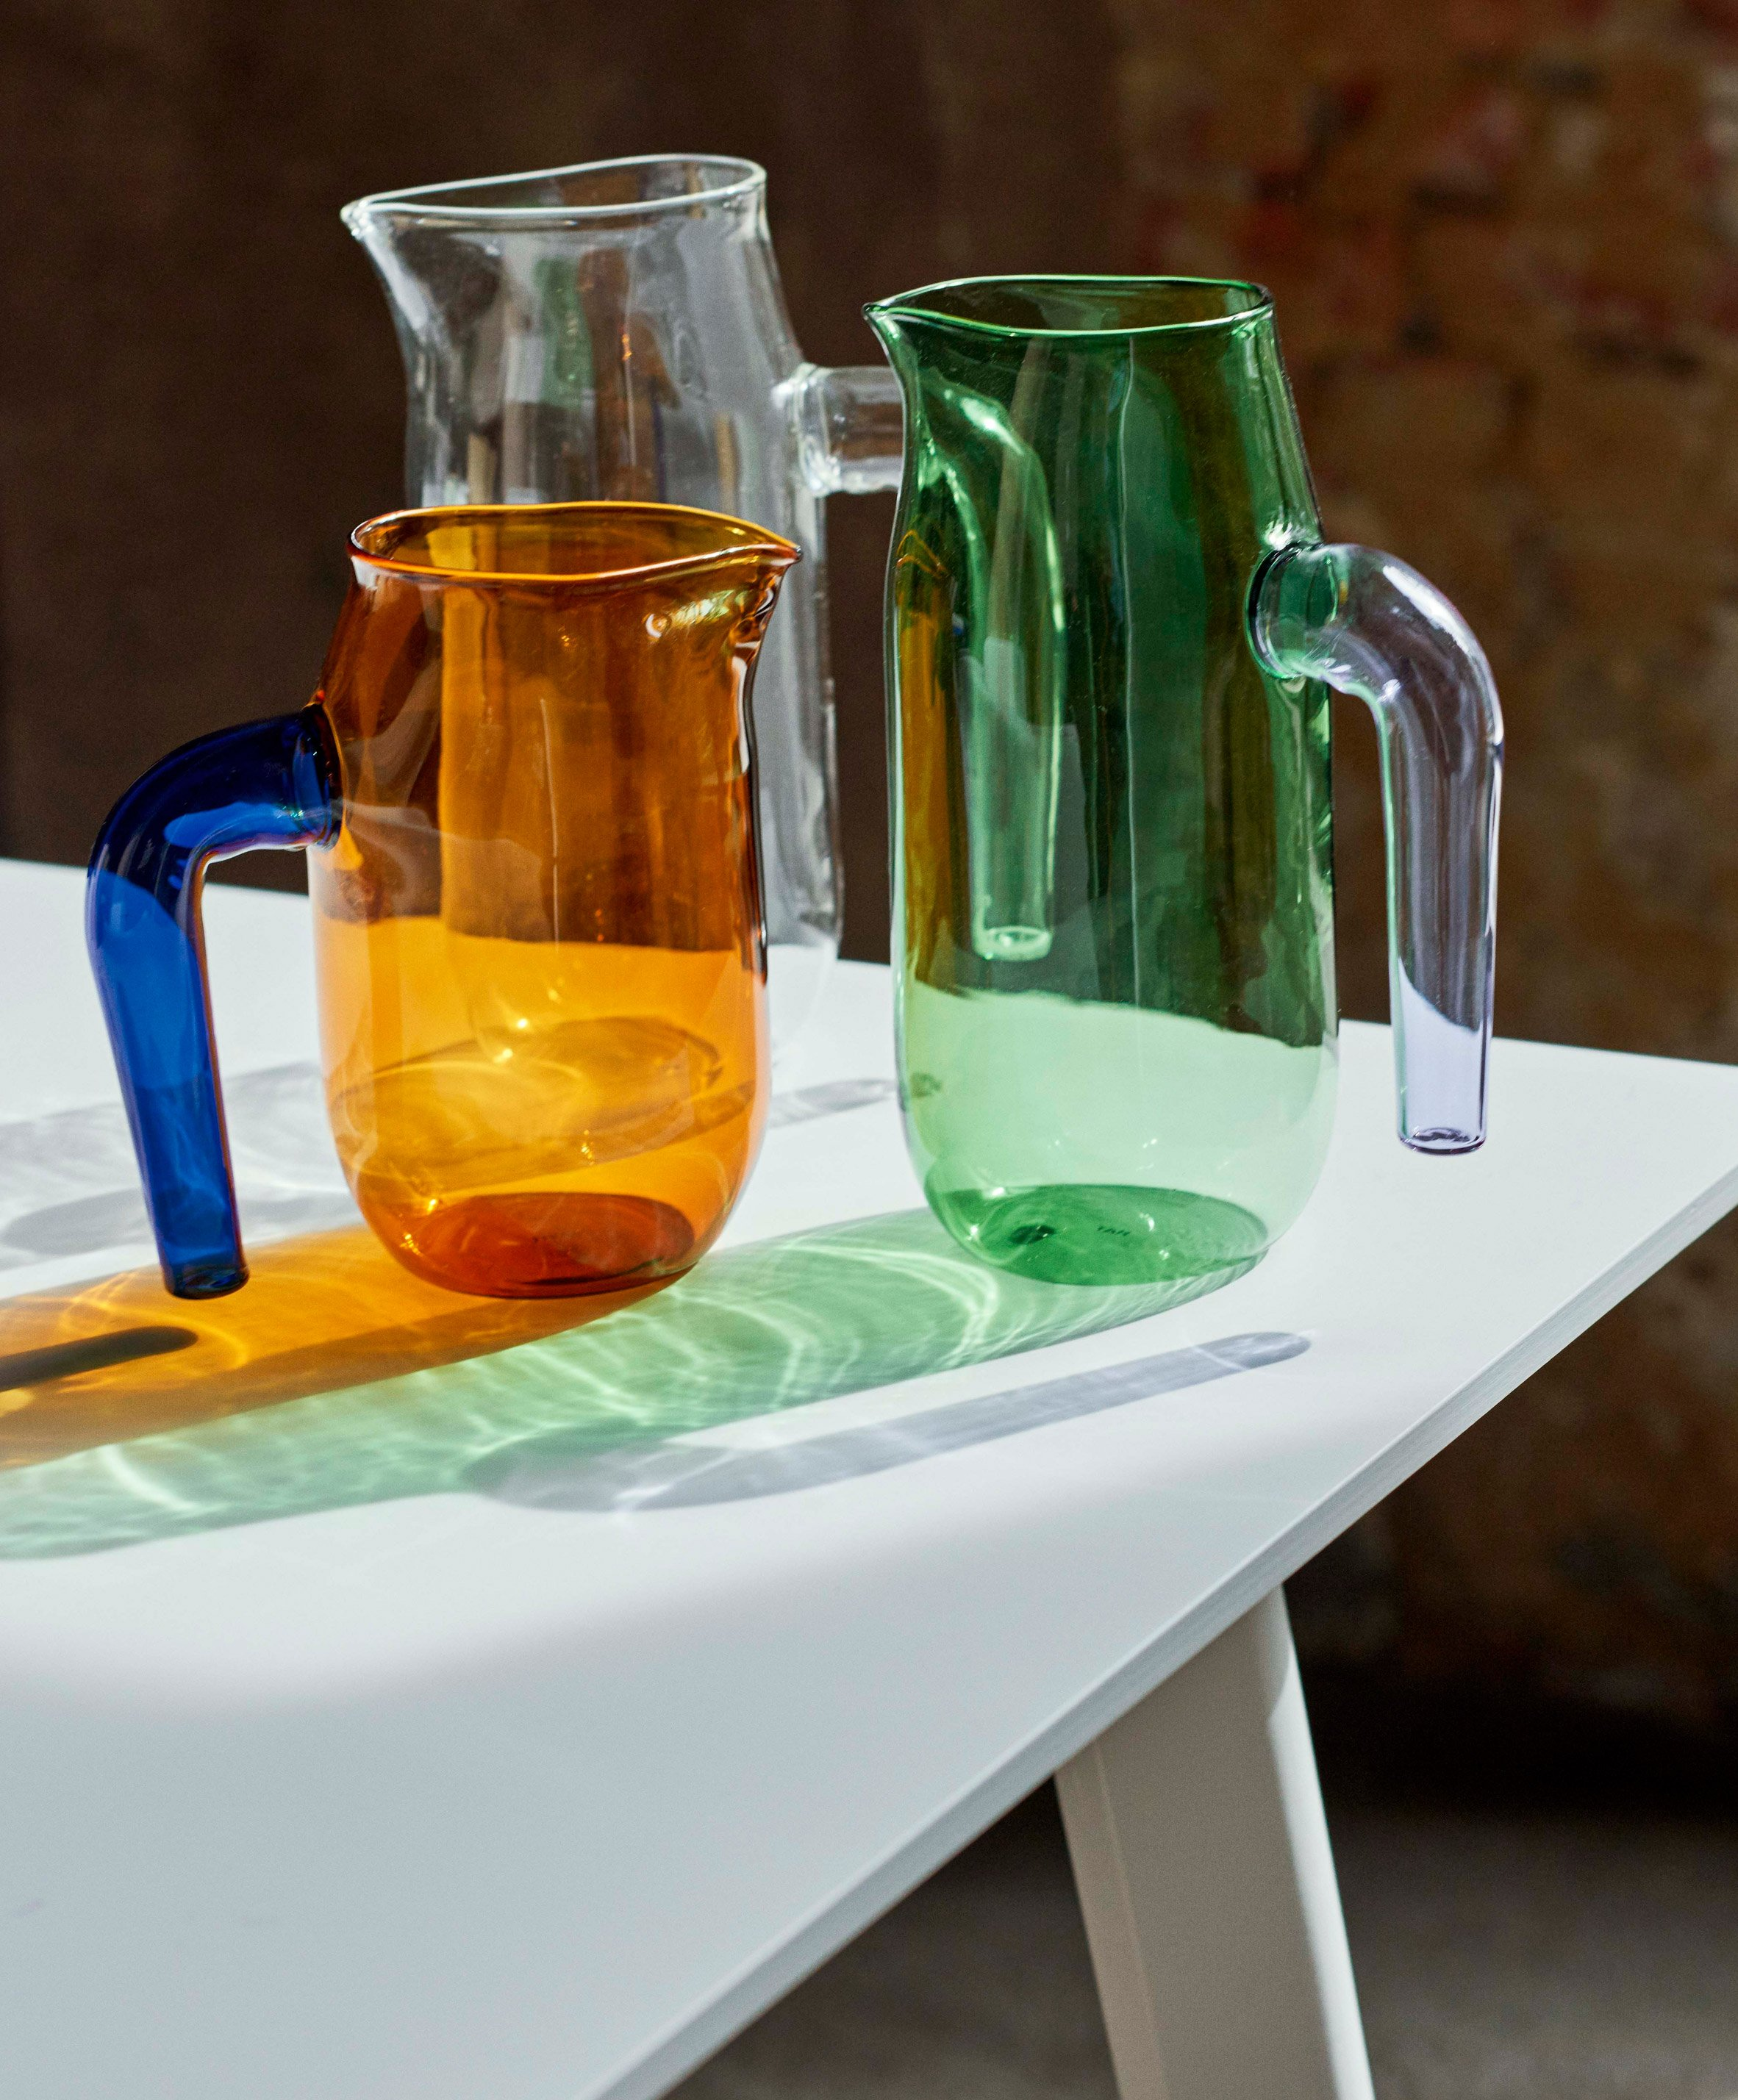 Hay collaborates with Danish chef to create range of kitchen accessories